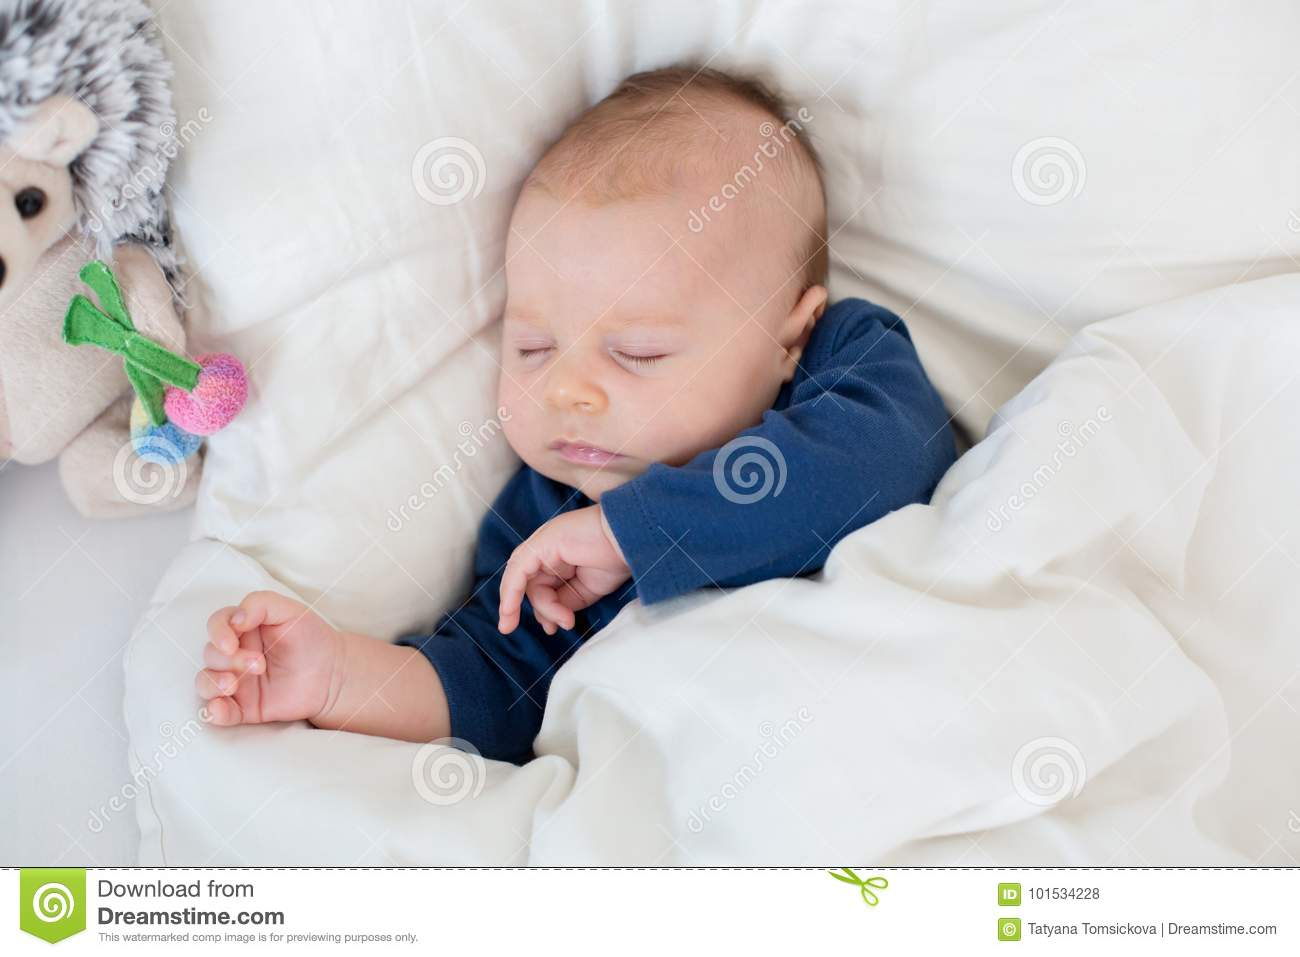 Newborn Infant With Fever Cute Newborn Baby Boy Lying In Bed With Cold Stock Photo